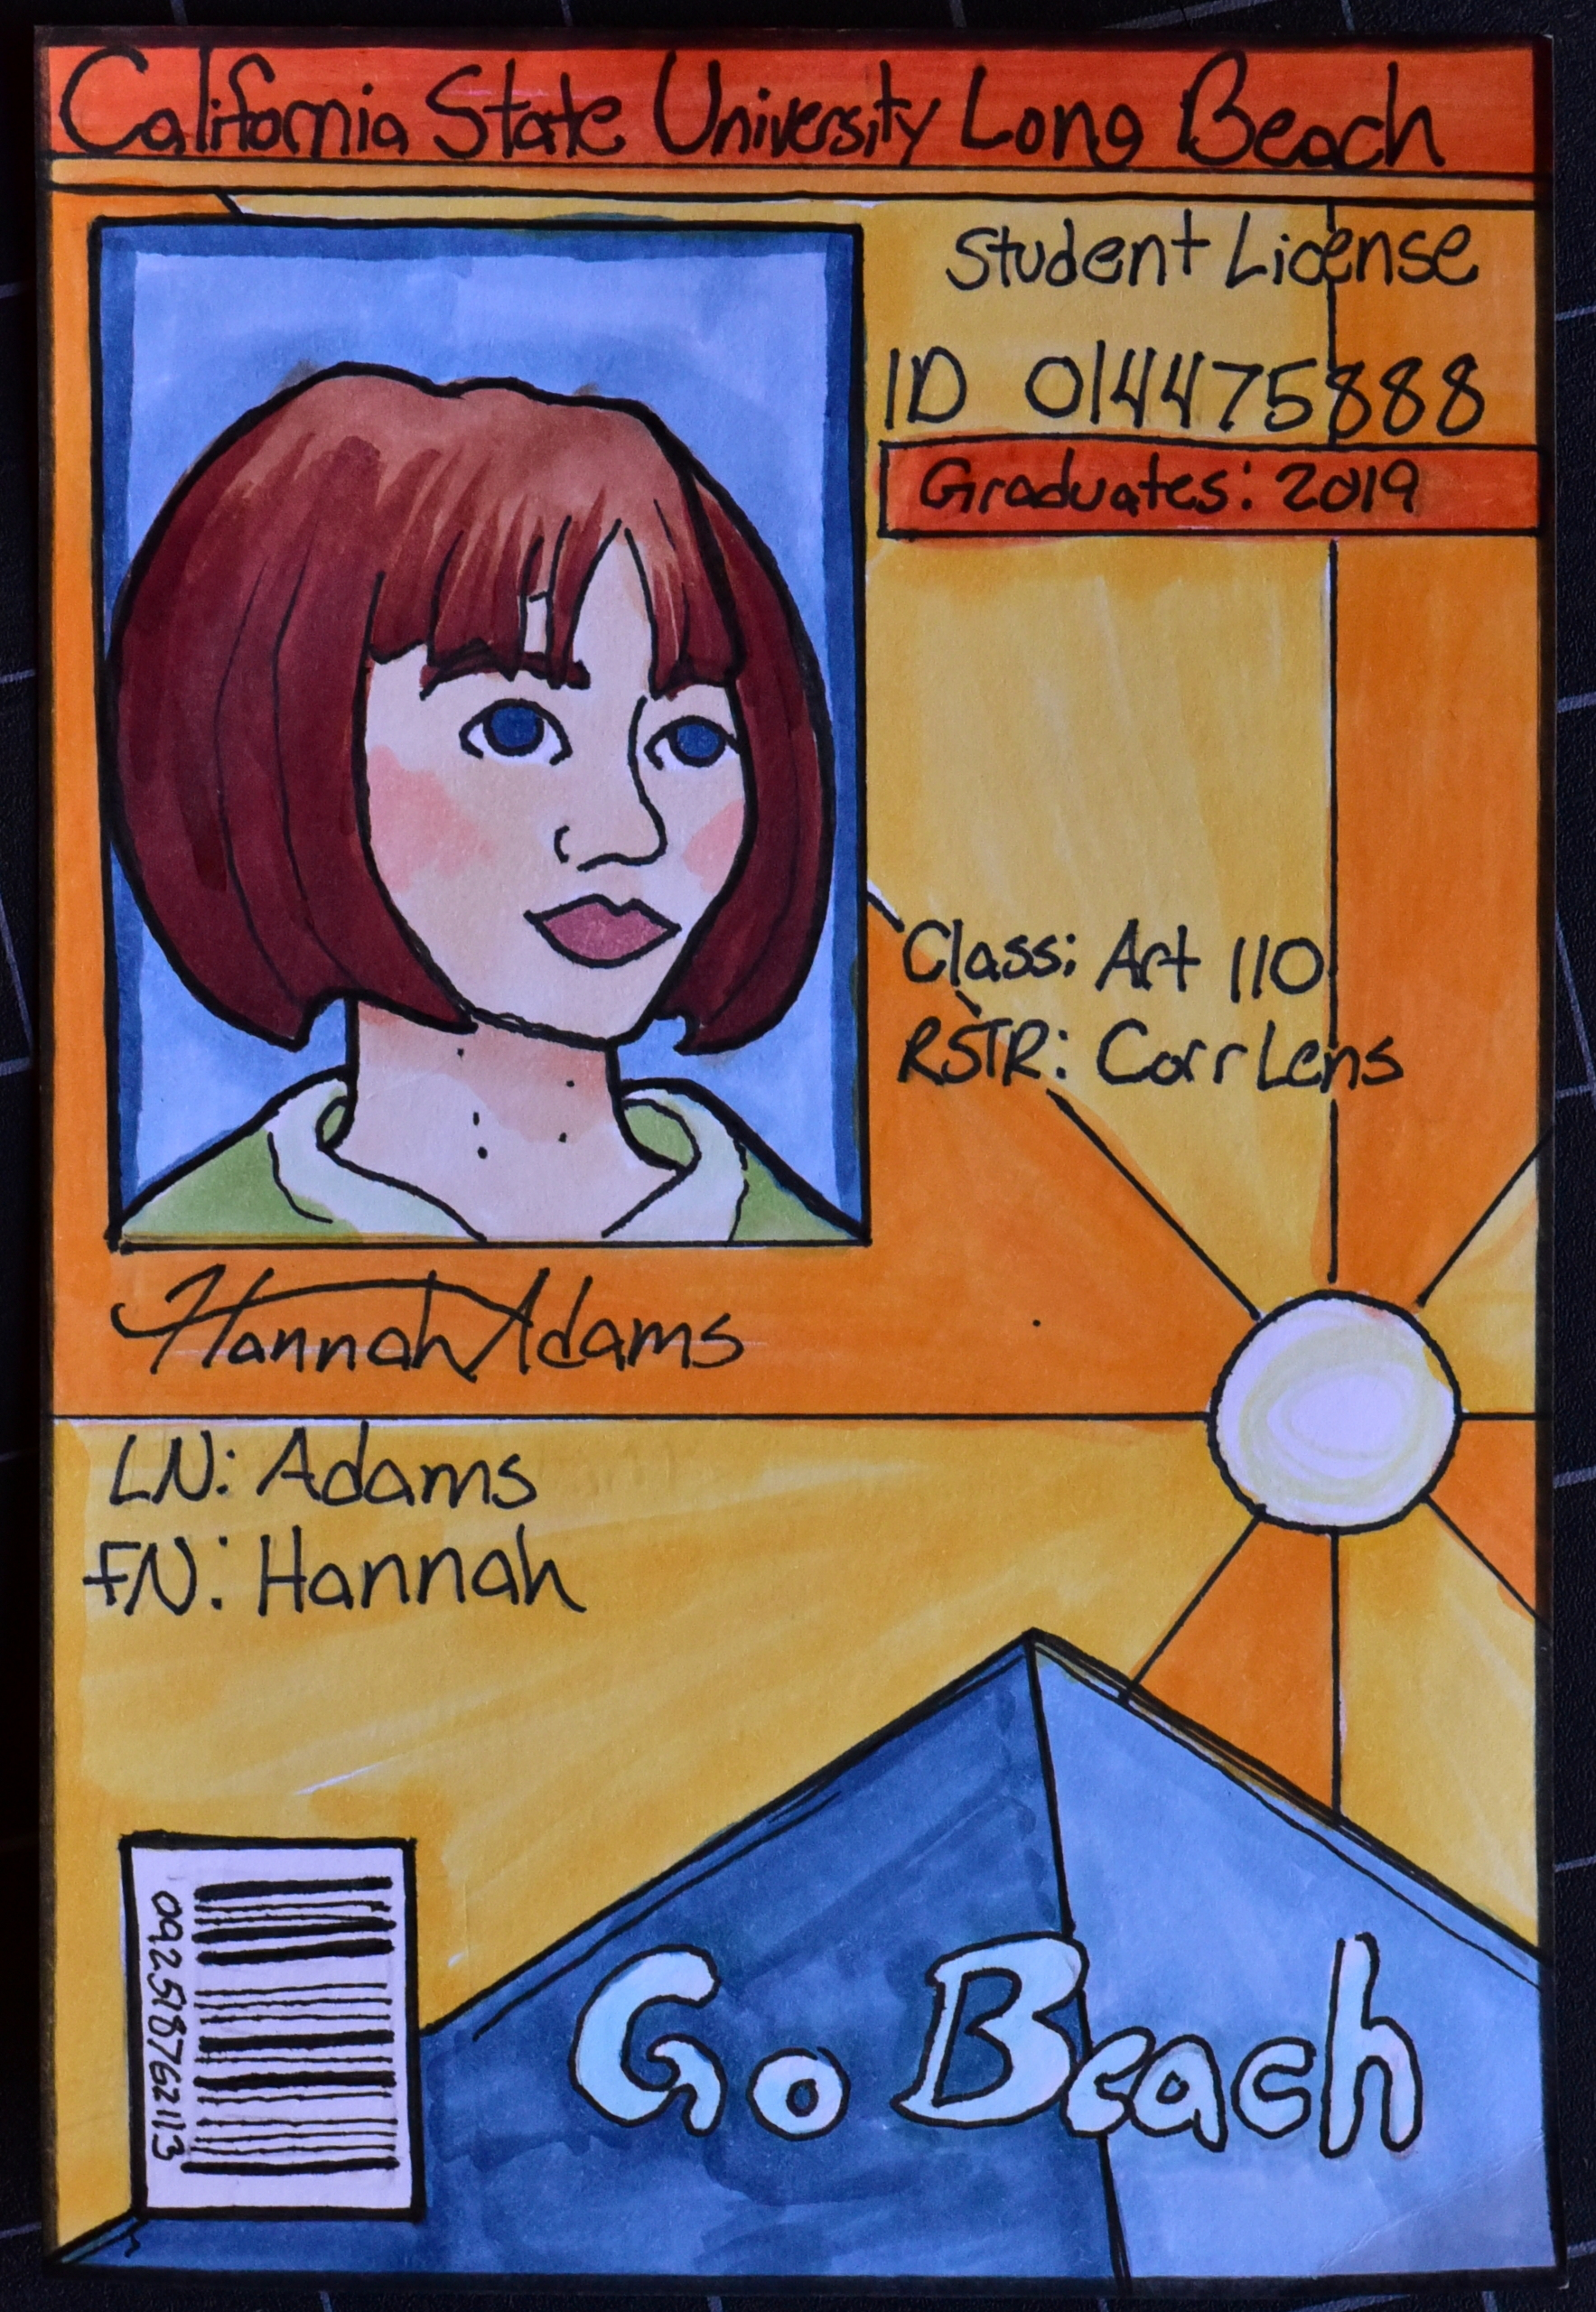 Hannah Adams' Colored Marker ID Cards